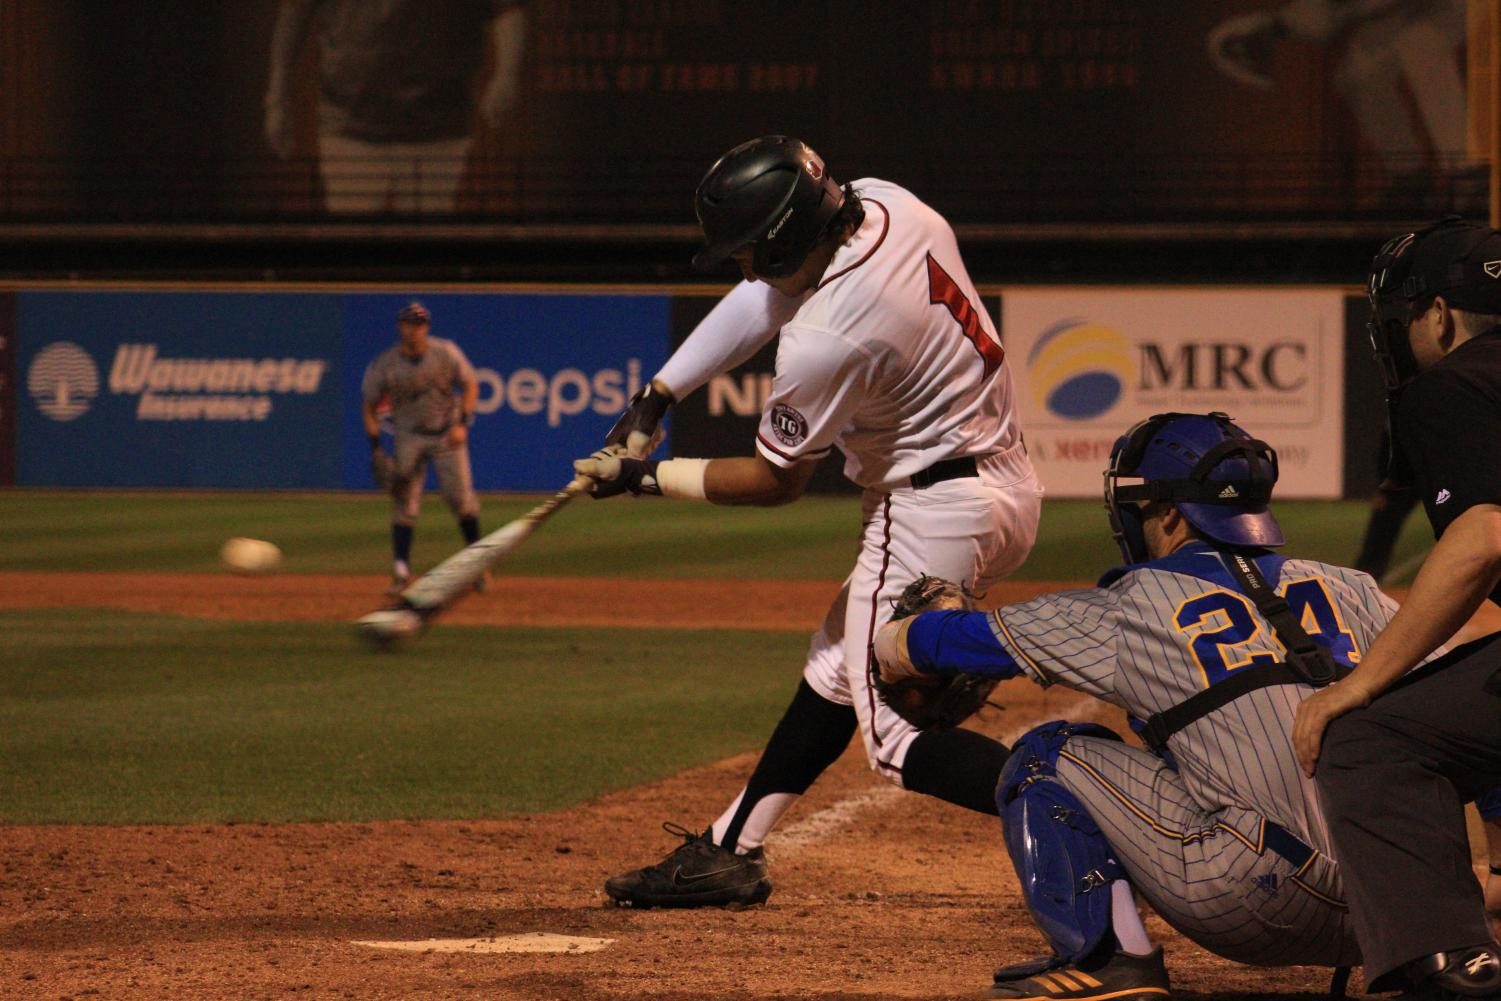 Sophomore outfielder Julian Escobedo connects for an eighth inning home run during the Aztecs 5-4 victory over CSU Bakersfield on March 20 at Tony Gwynn Stadium.